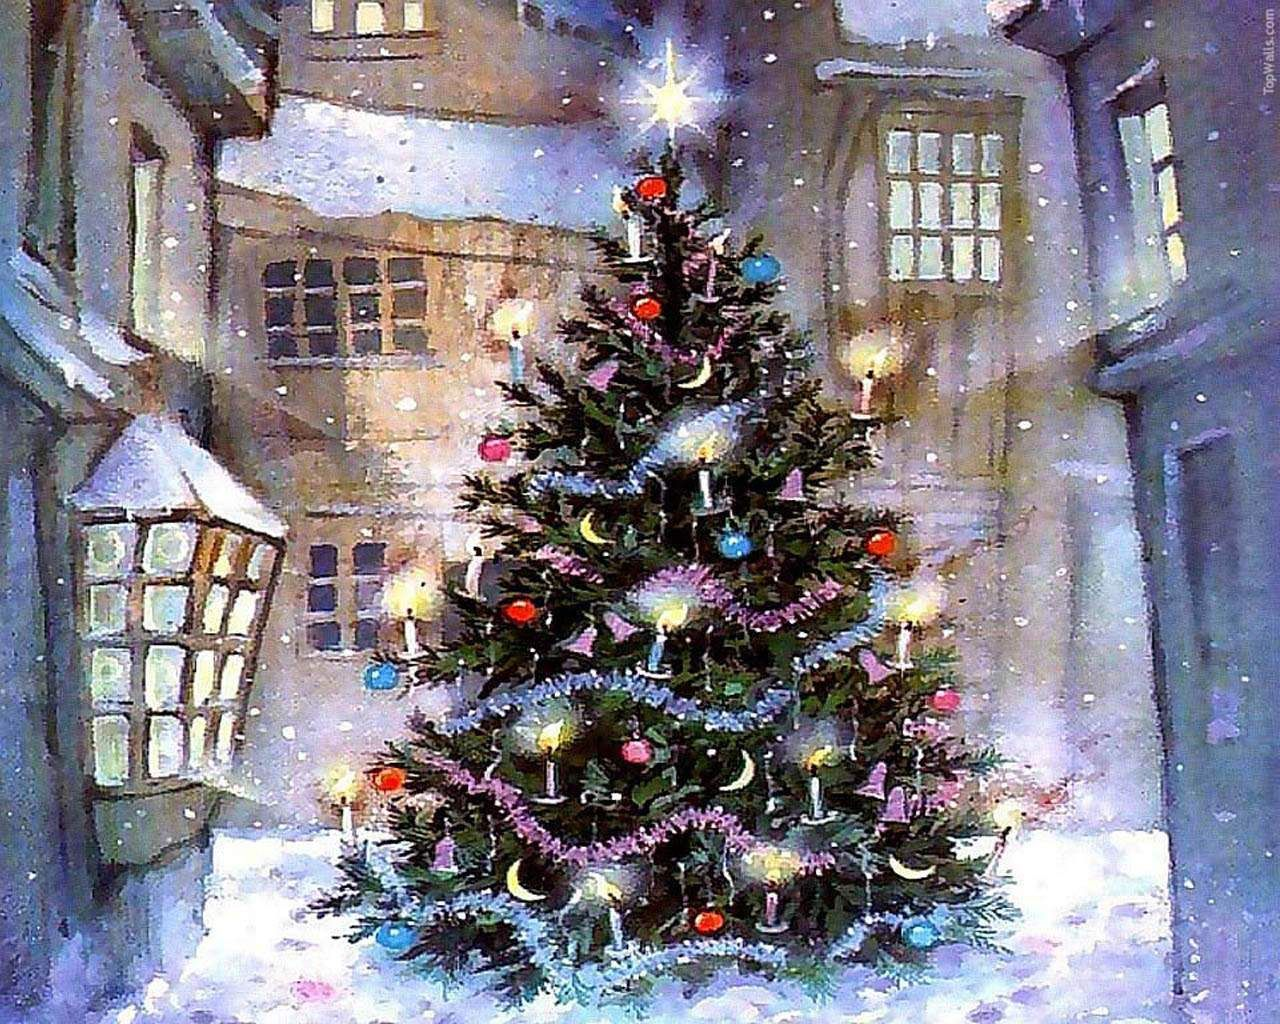 Christmas Images Free Free Download Wallpapers Widescreen